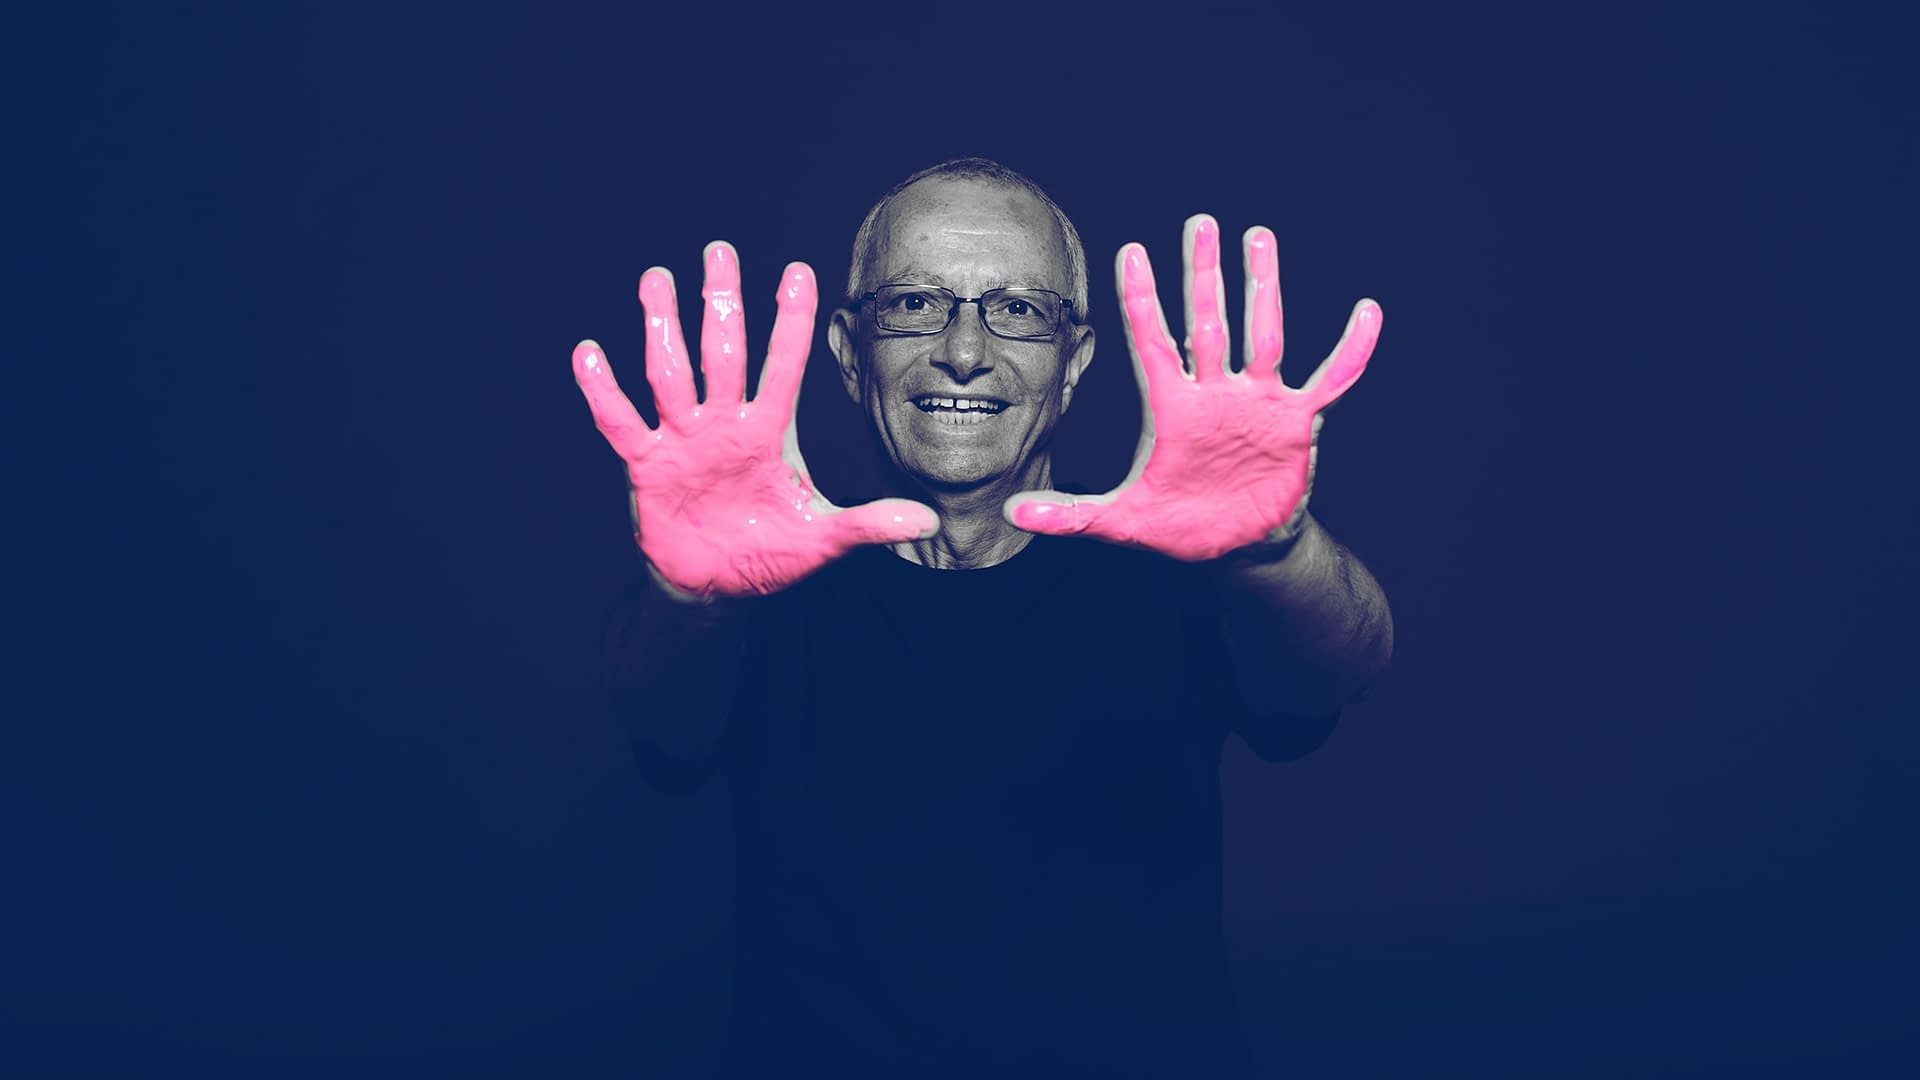 BayCare survivor posing for the in our hands campaign with pink paint on his hands